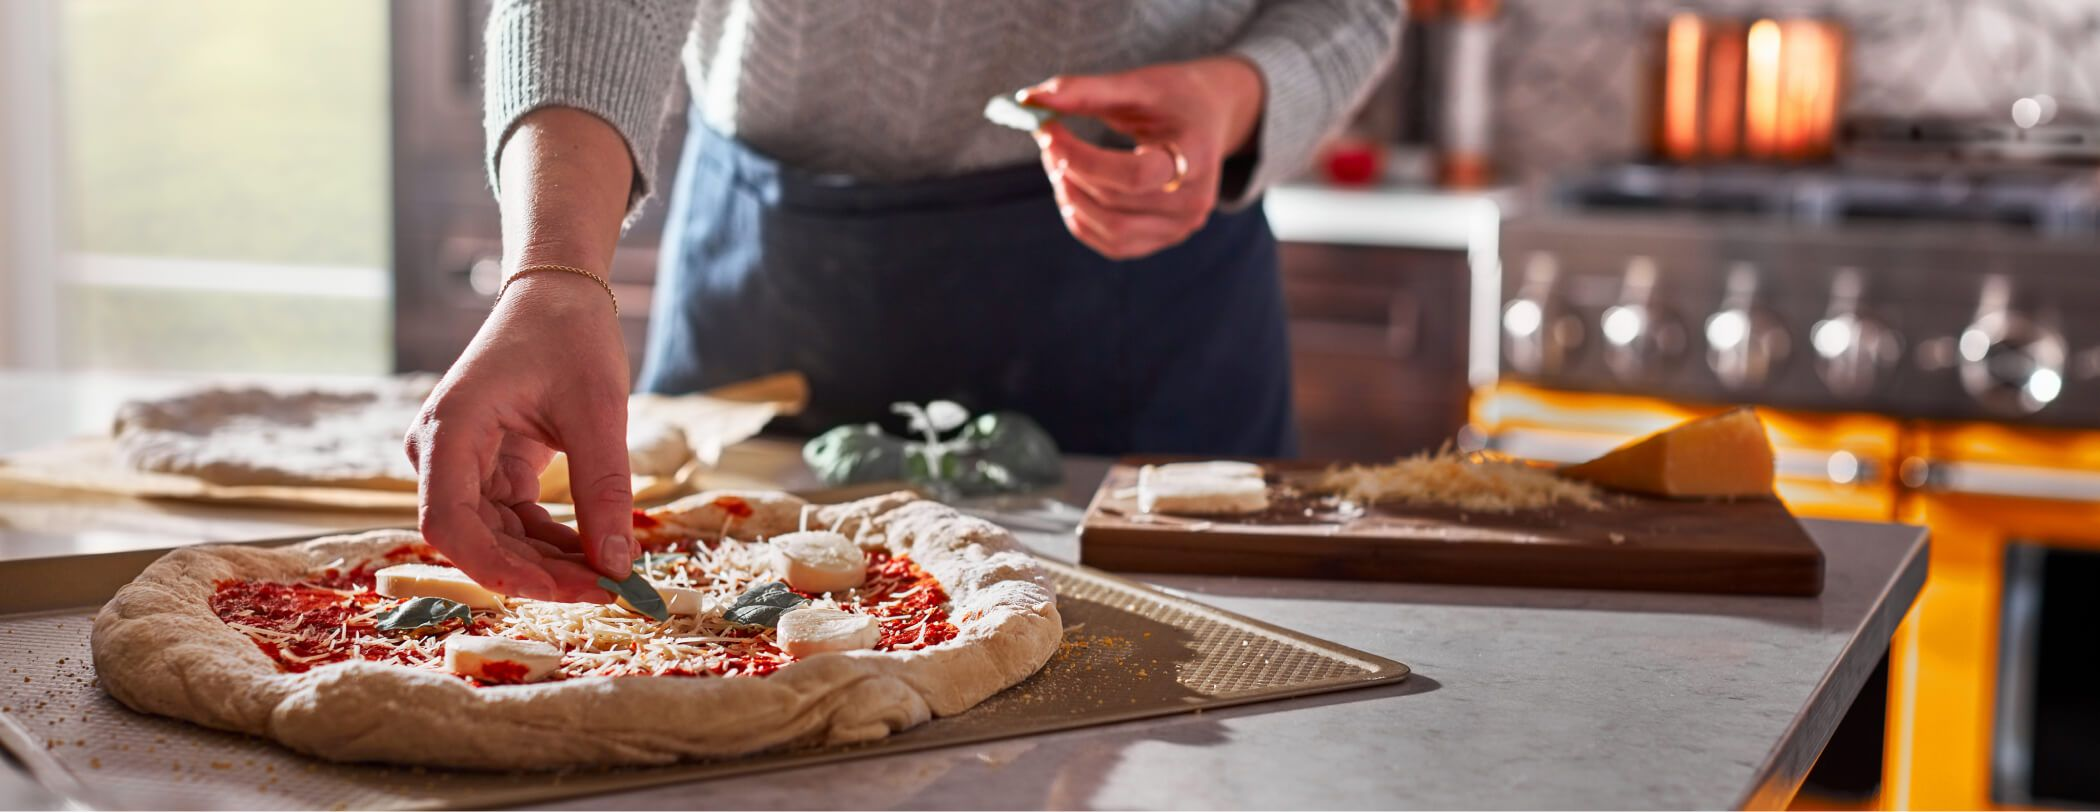 A person dressing pizza in the kitchen, featuring a Scorched Orange commercial-style range.